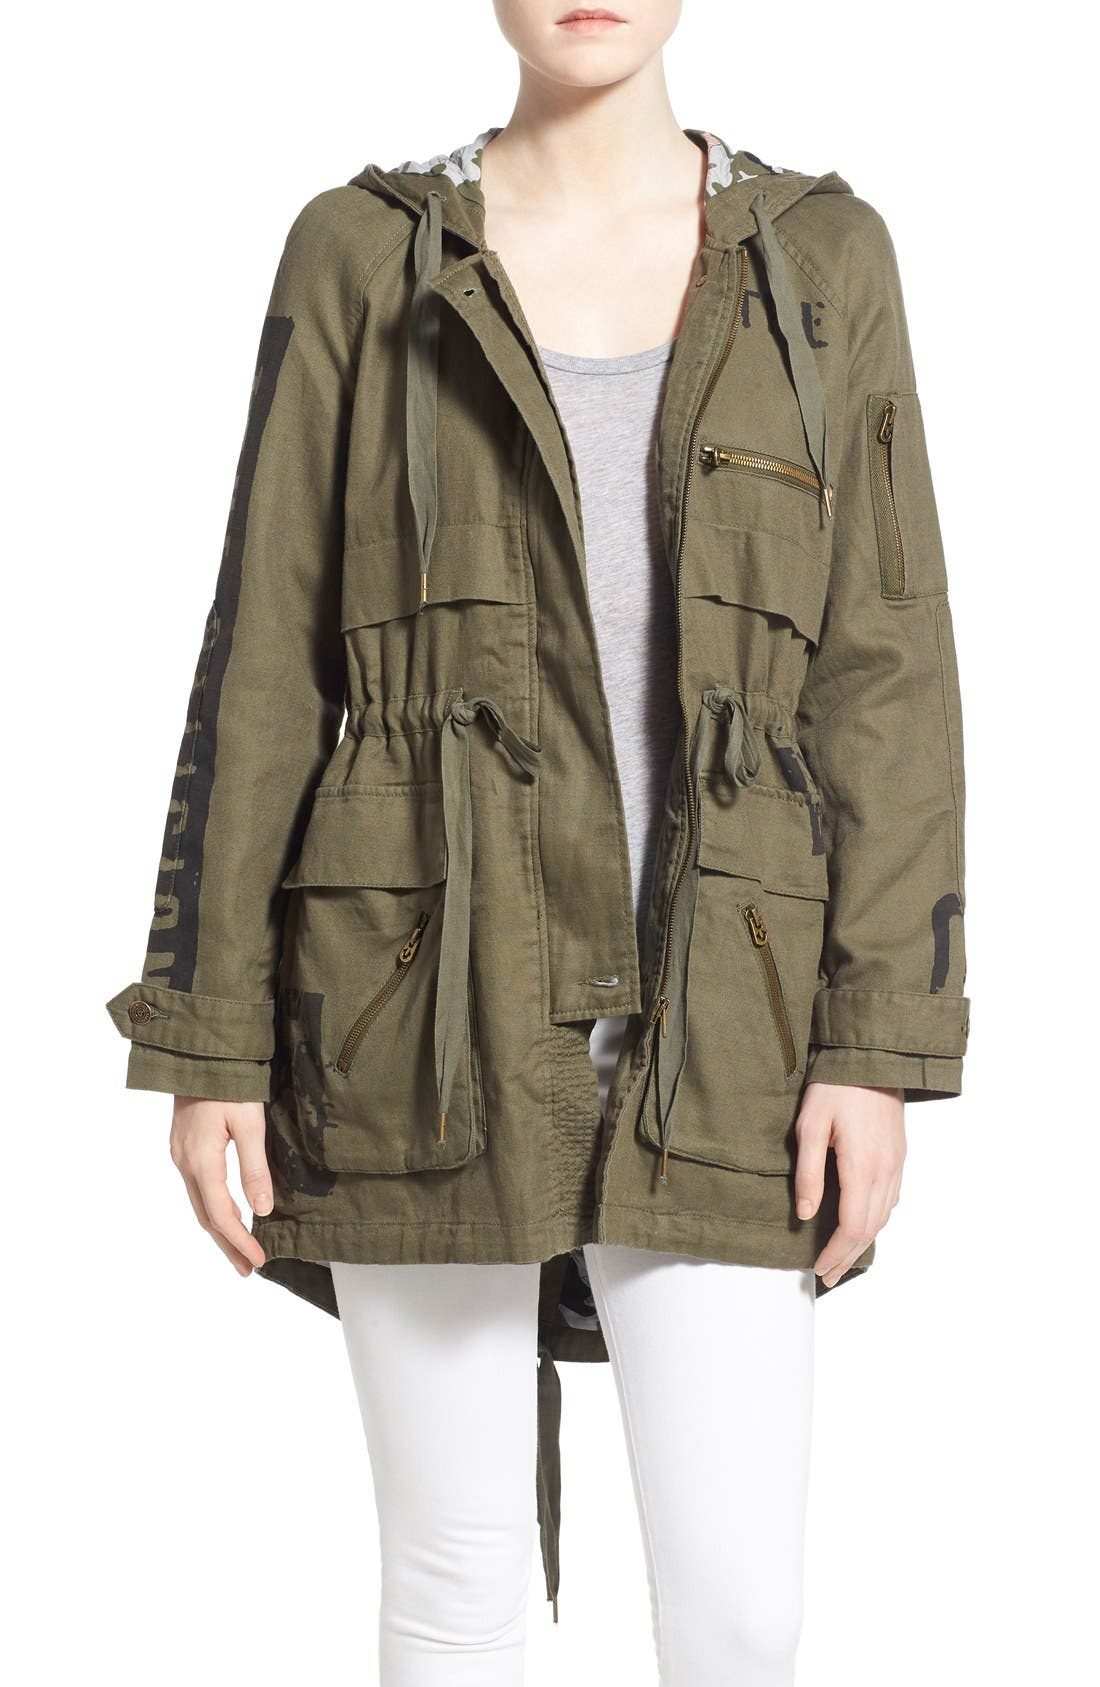 Alternate Image 1 Selected - True Religion Brand Jeans Military Parka